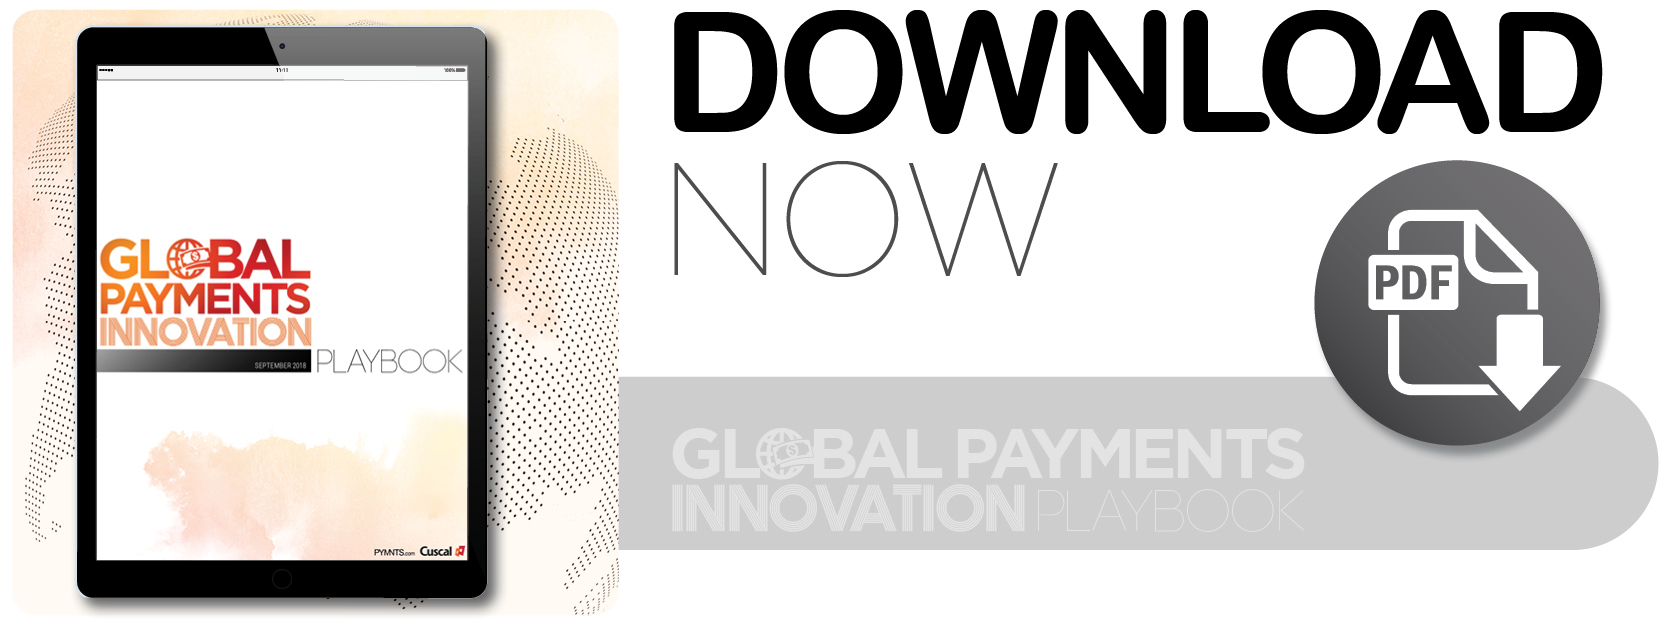 Expanding to Global Payments in a Mobile World | PYMNTS com